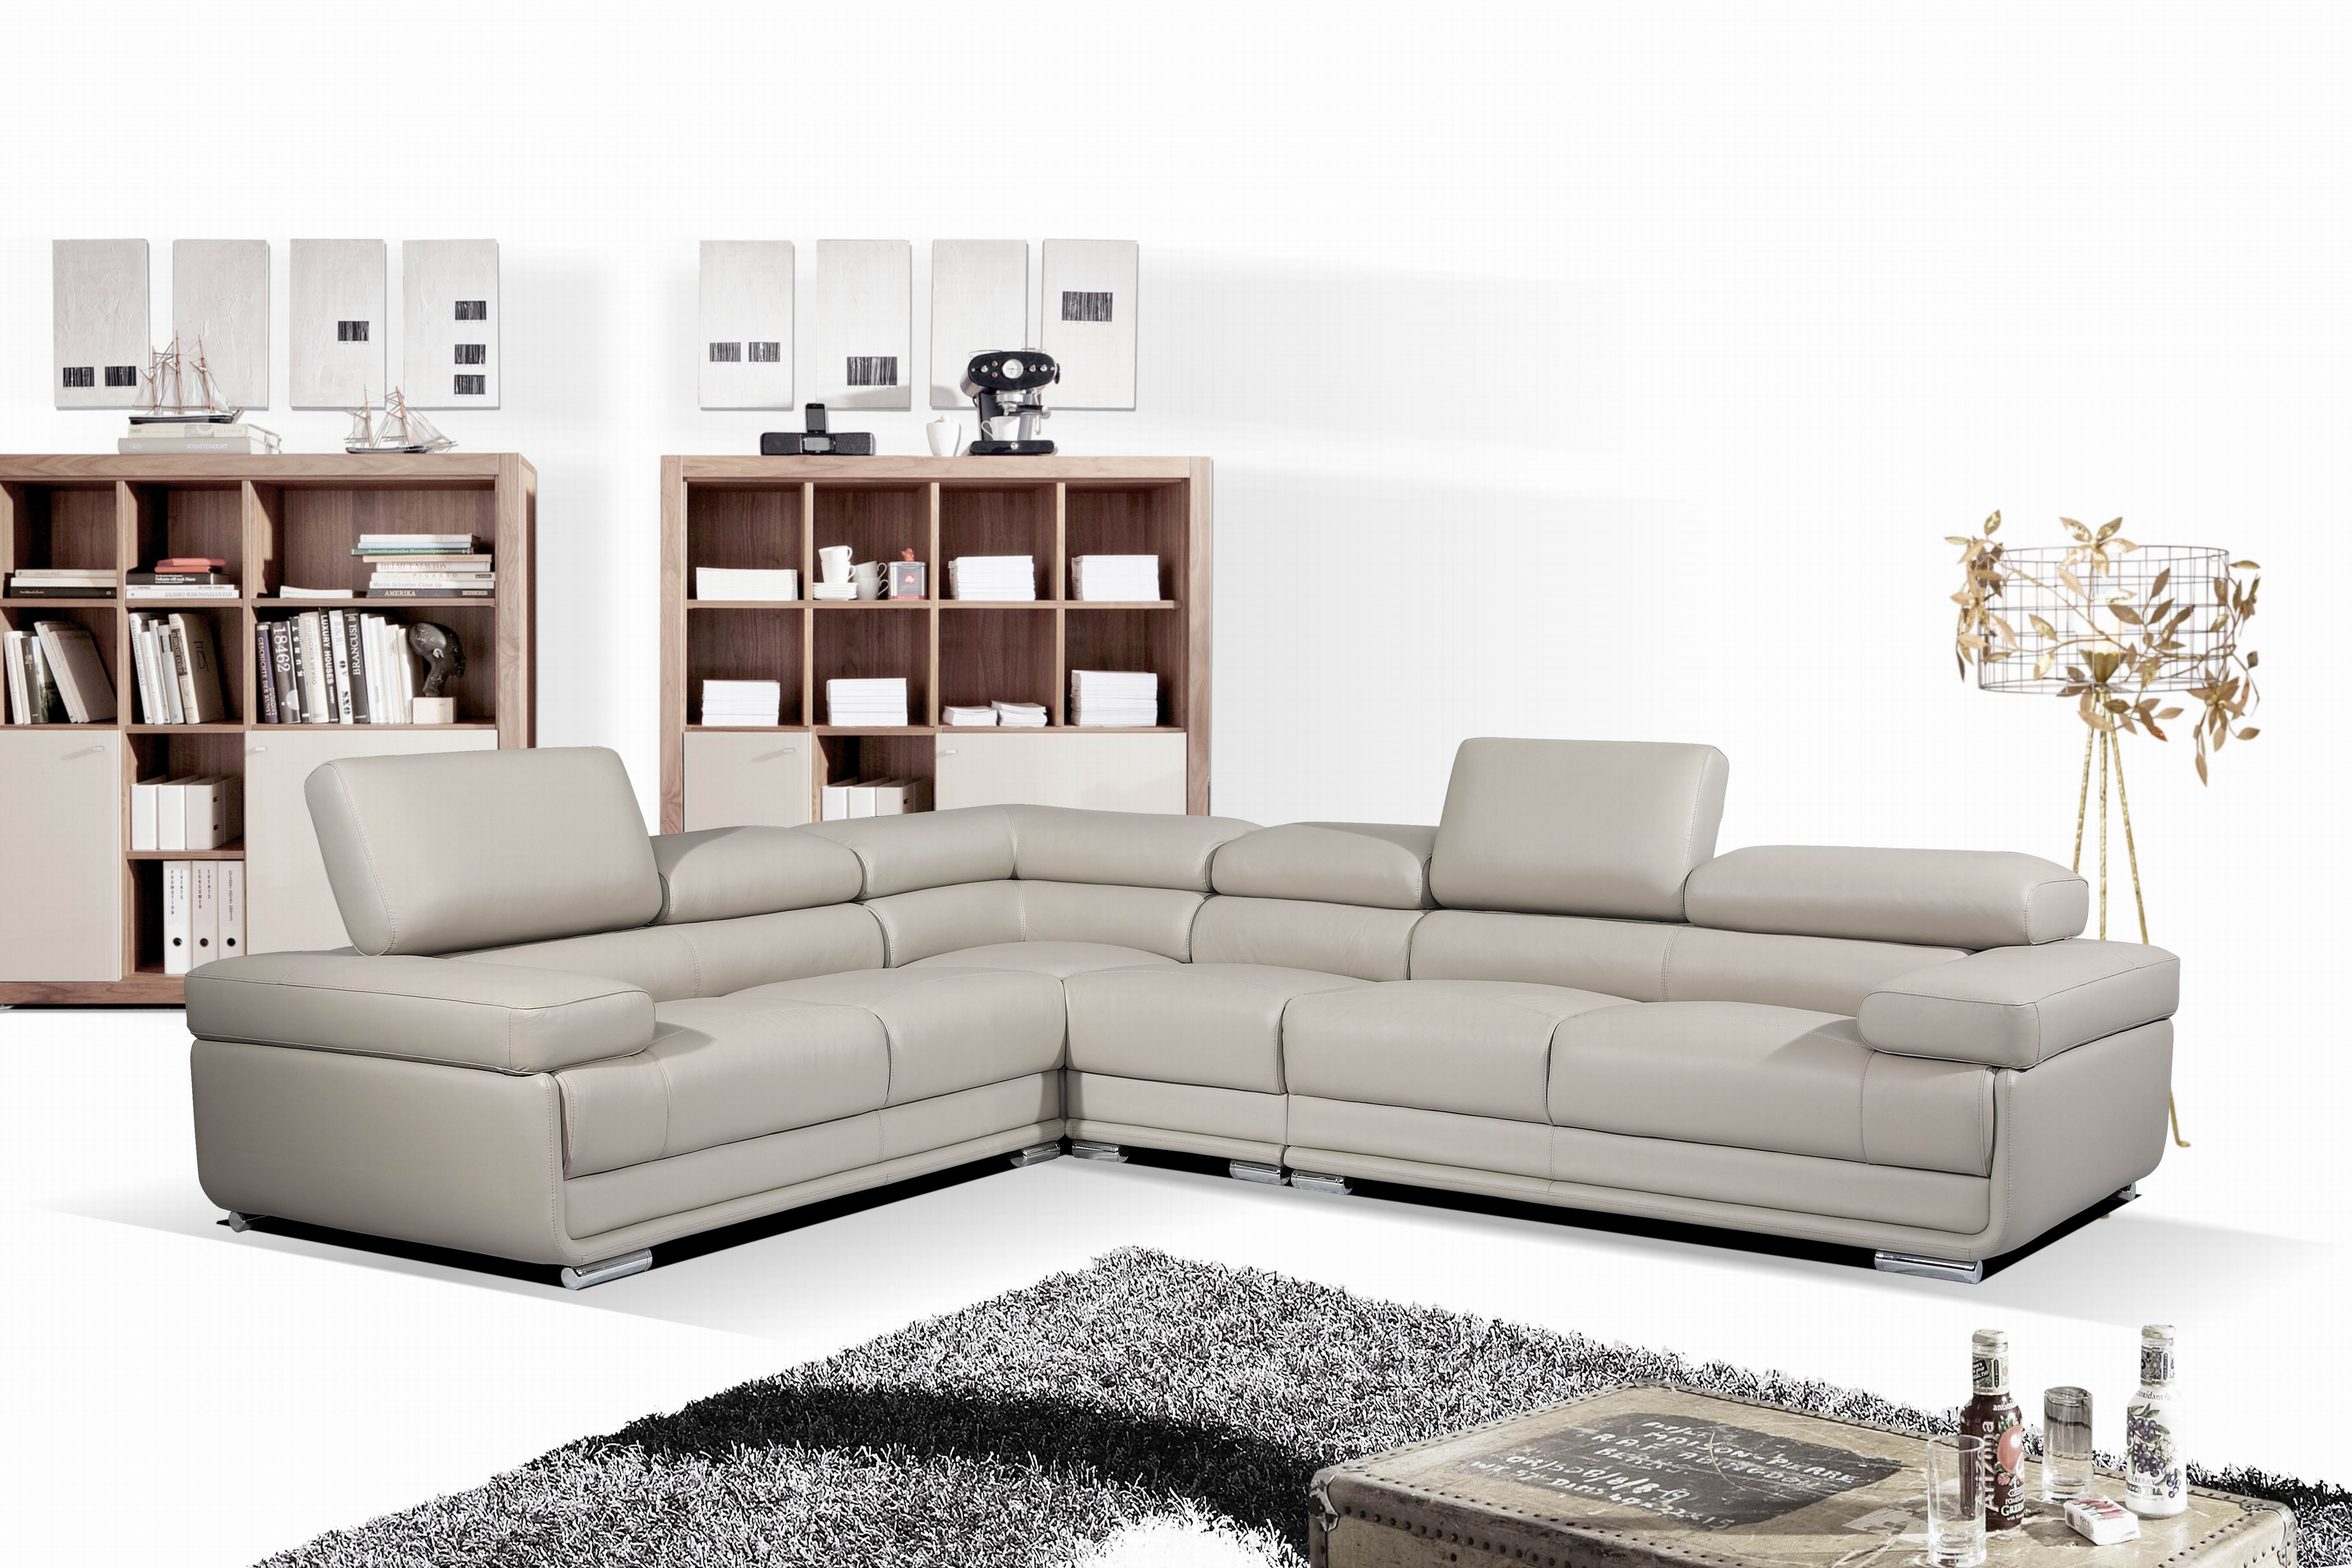 45 MAJOR GL6552 galagy home furniture